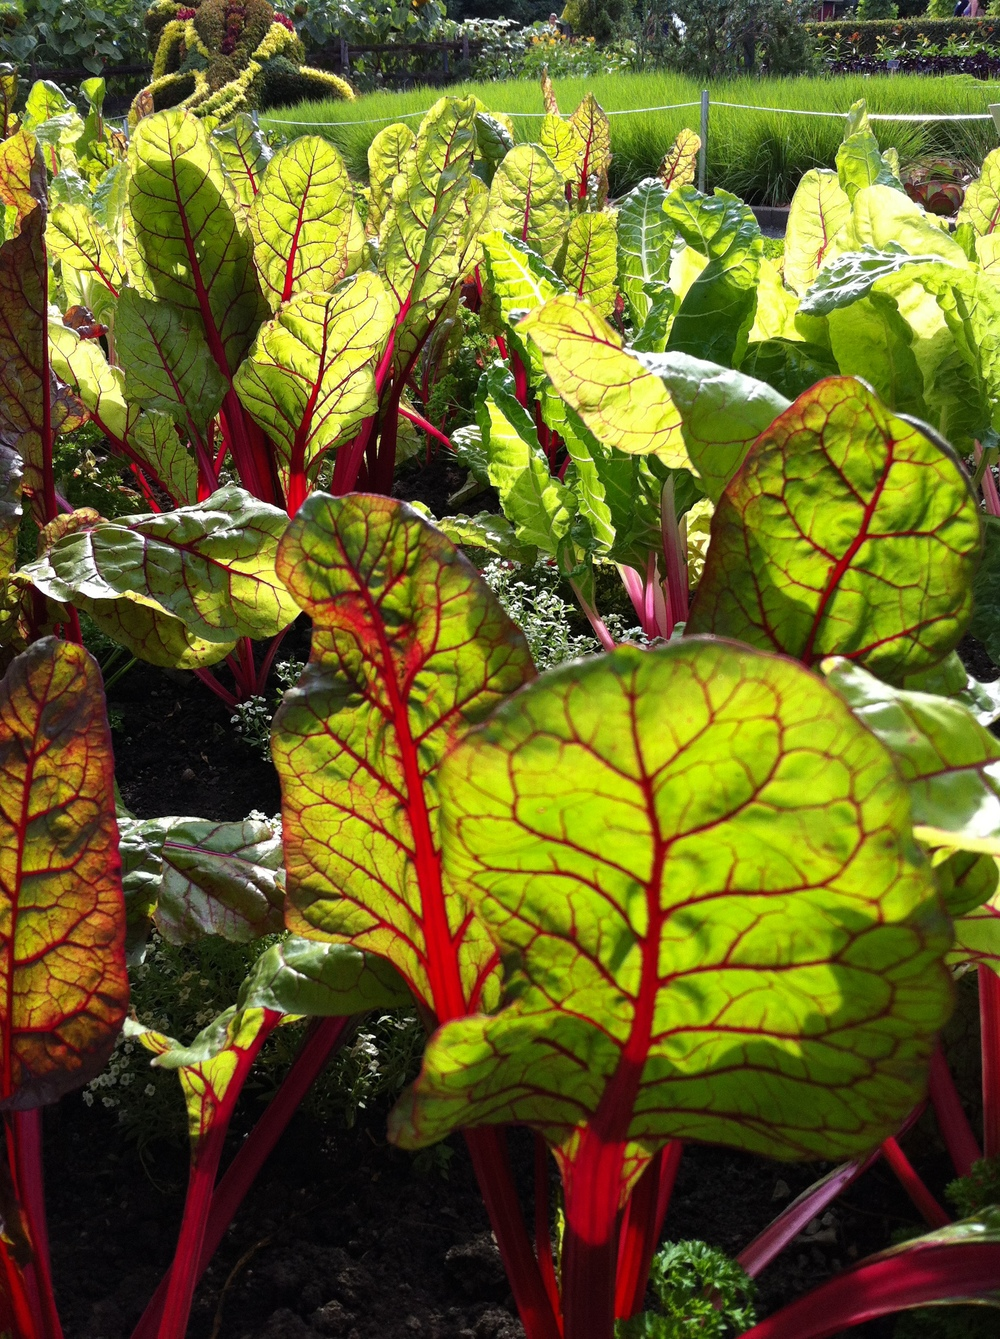 If you are short on space, you can plant veggies in garden beds, and they can look as beautiful as any other plant in your garden. Here is Swiss Chard growing in the Montreal Botanical Garden.